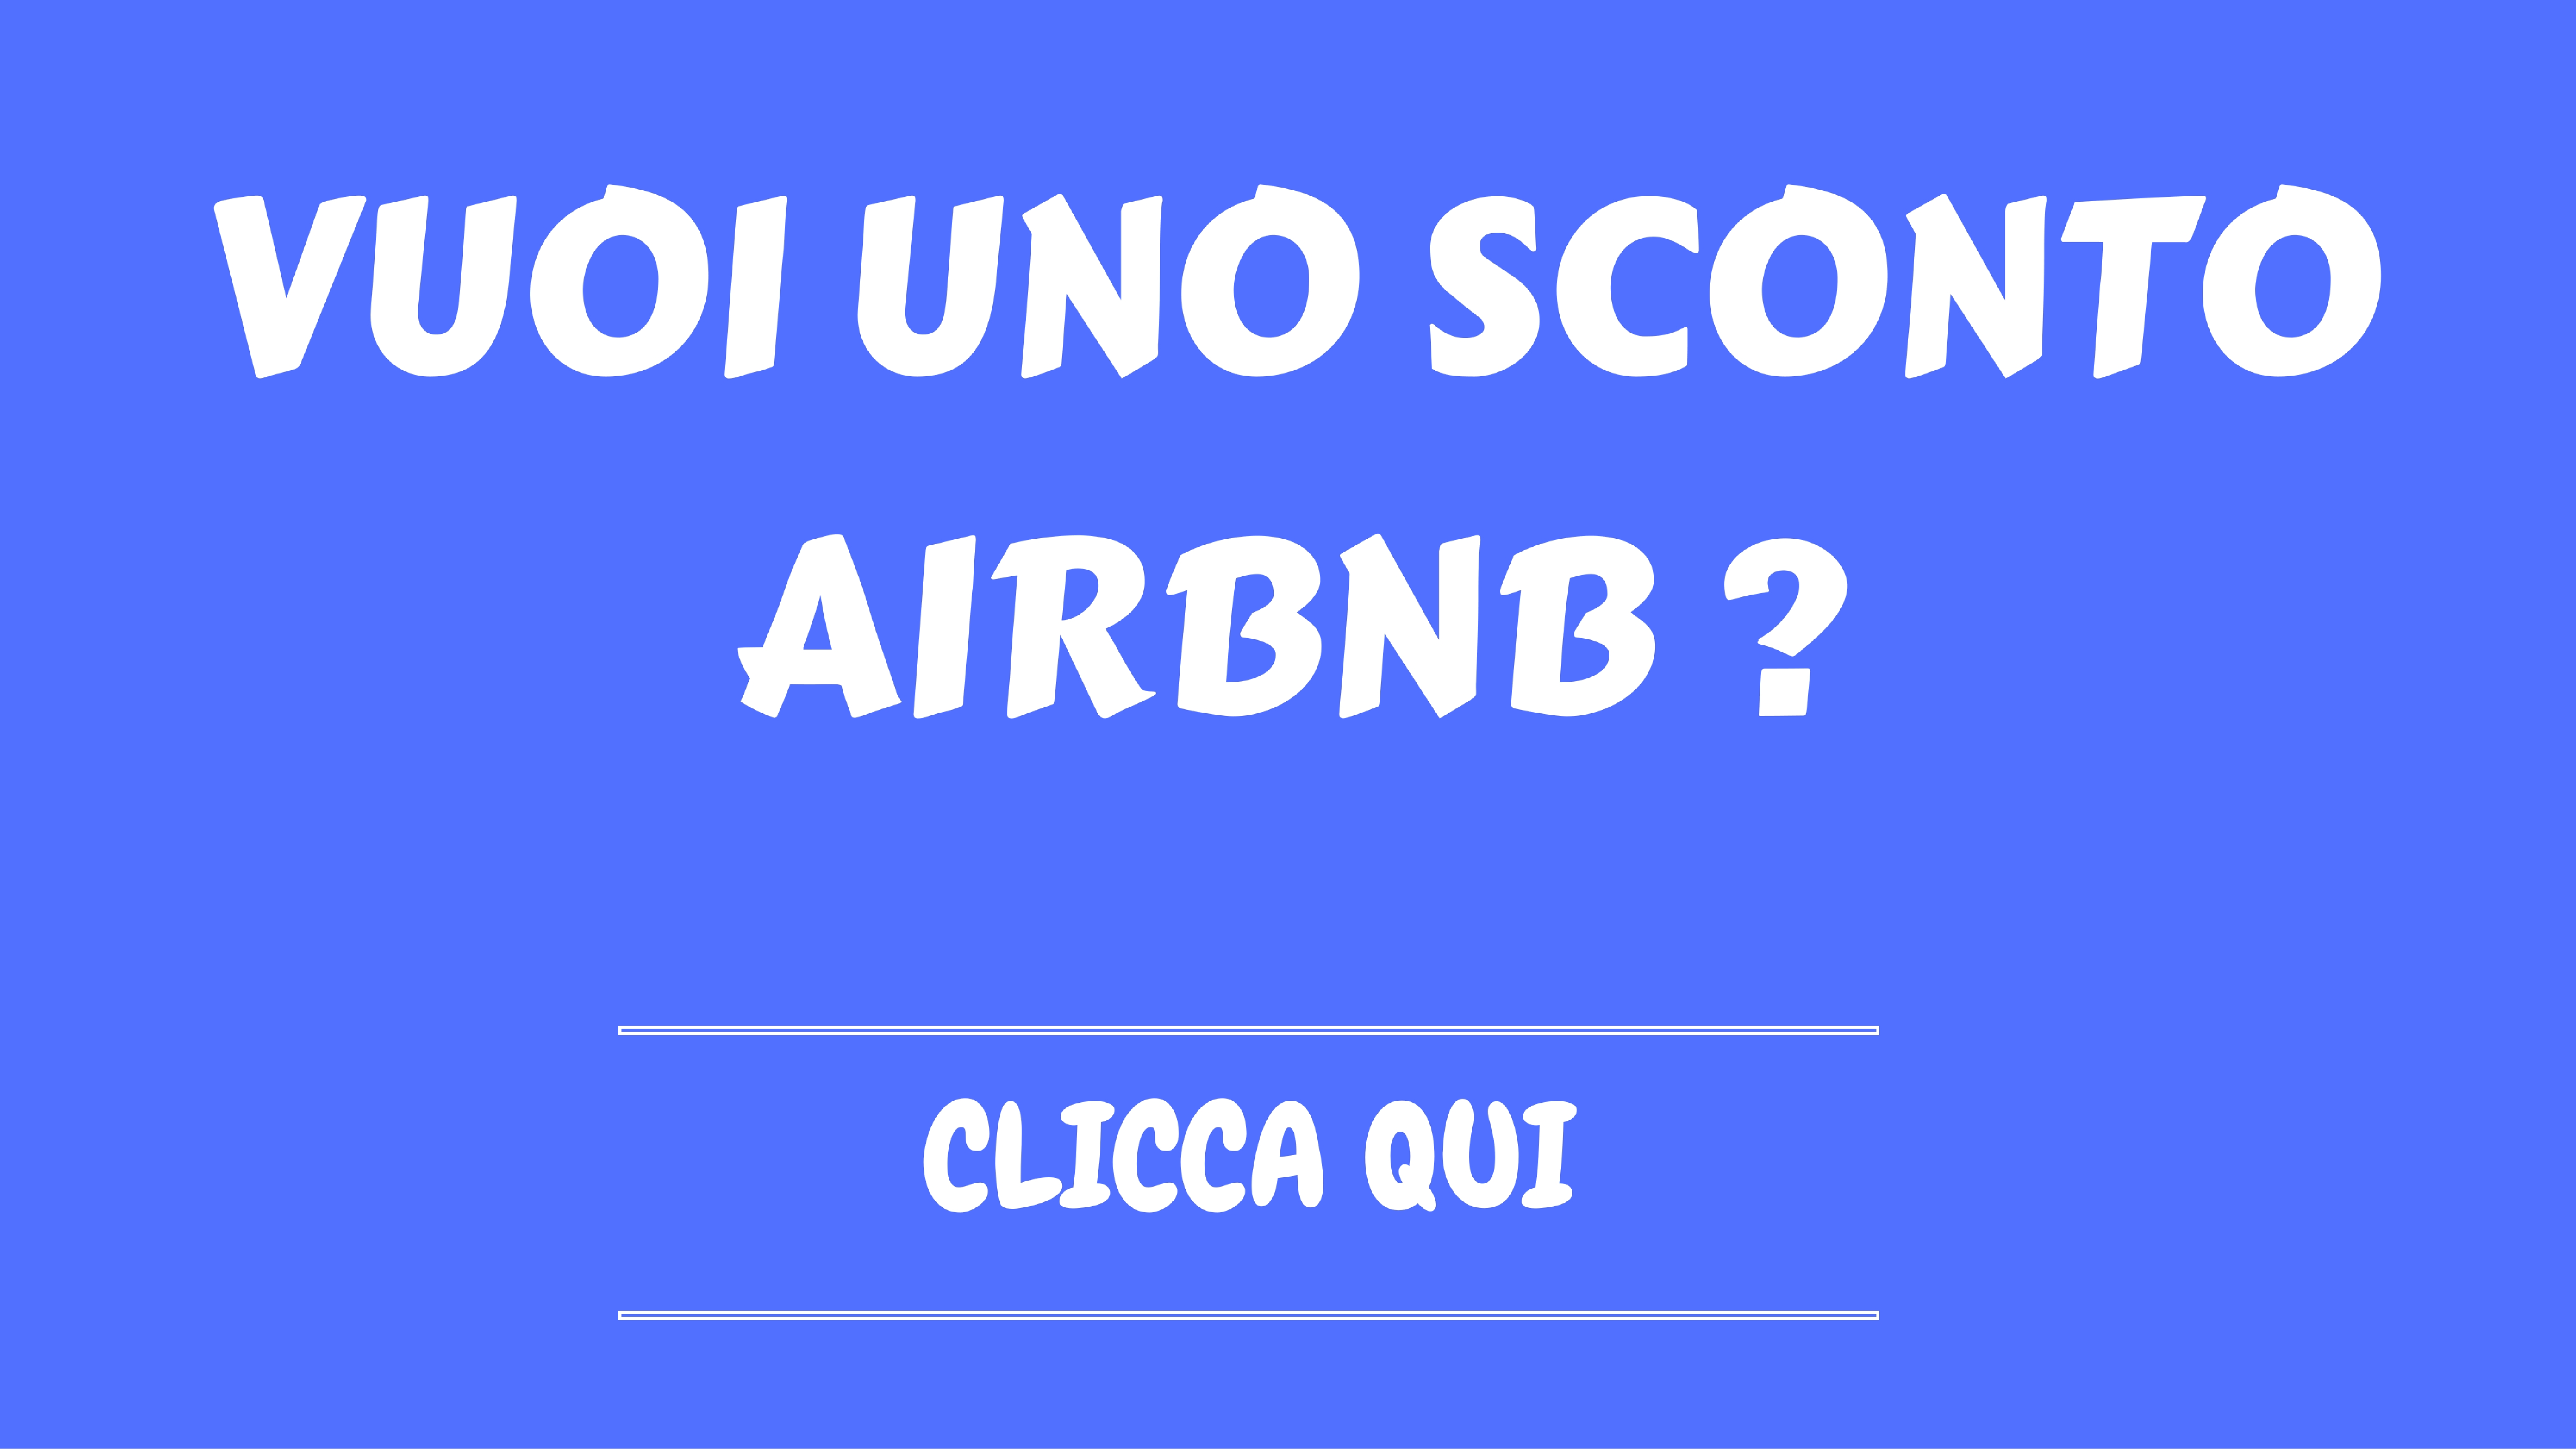 Sconto airbnb